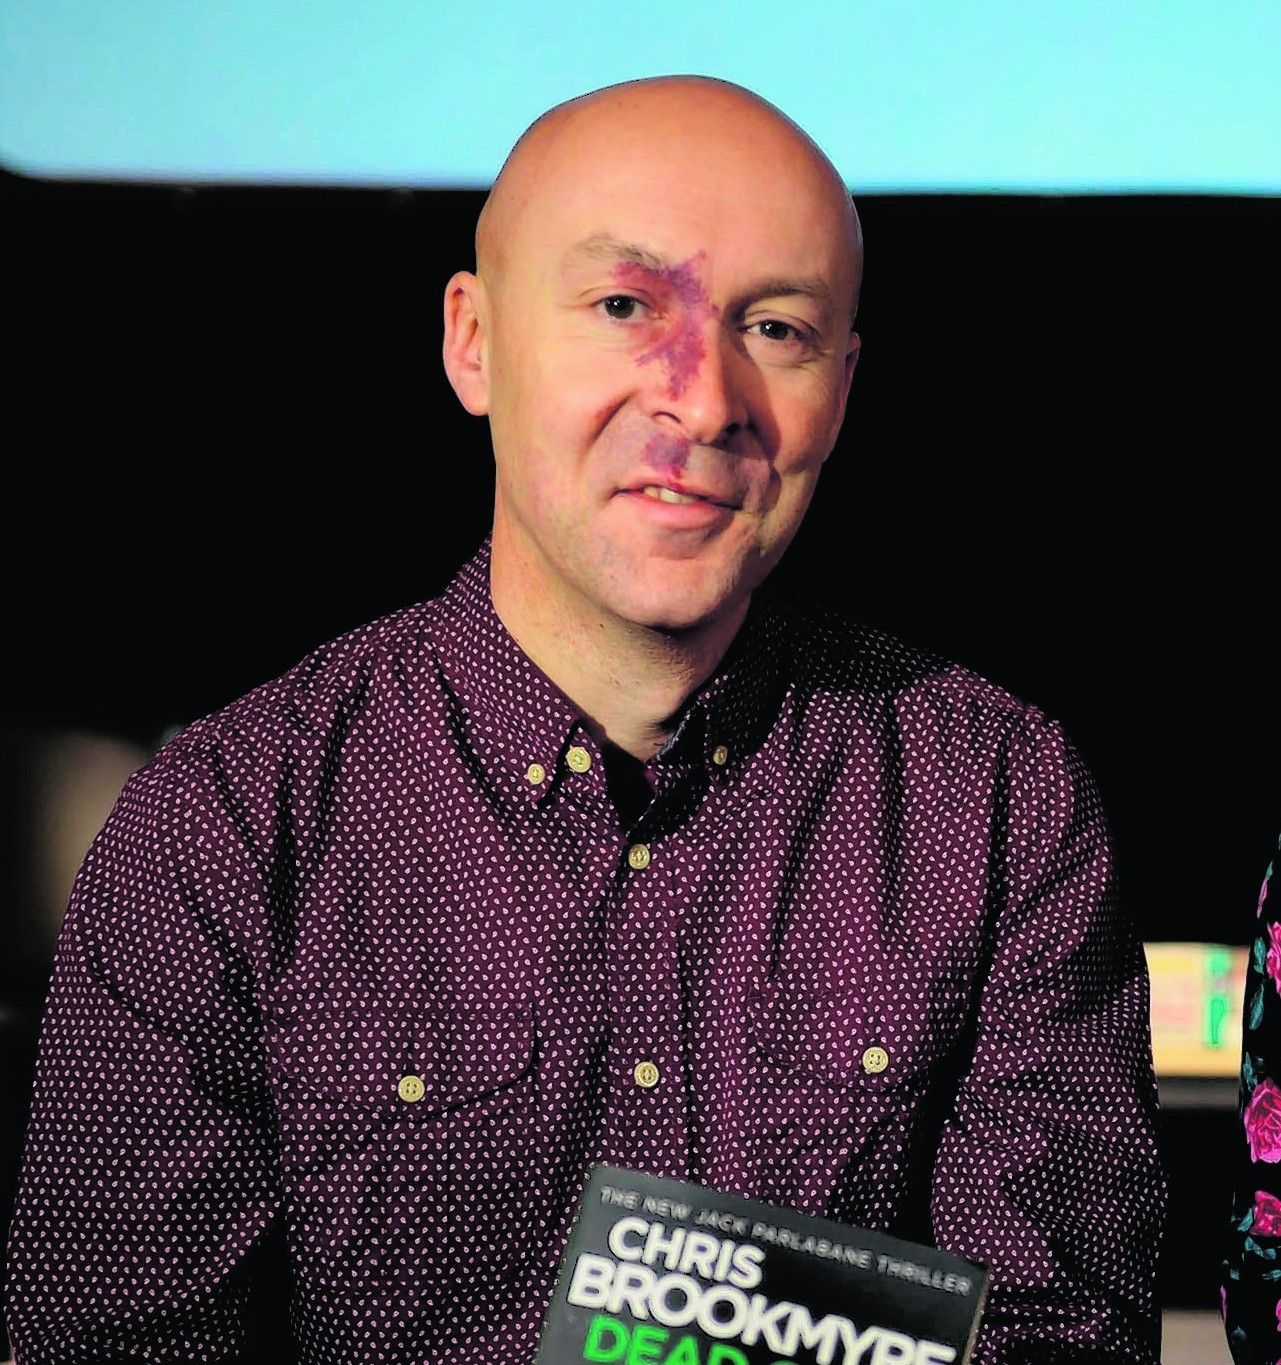 Author Christopher Brookmyre